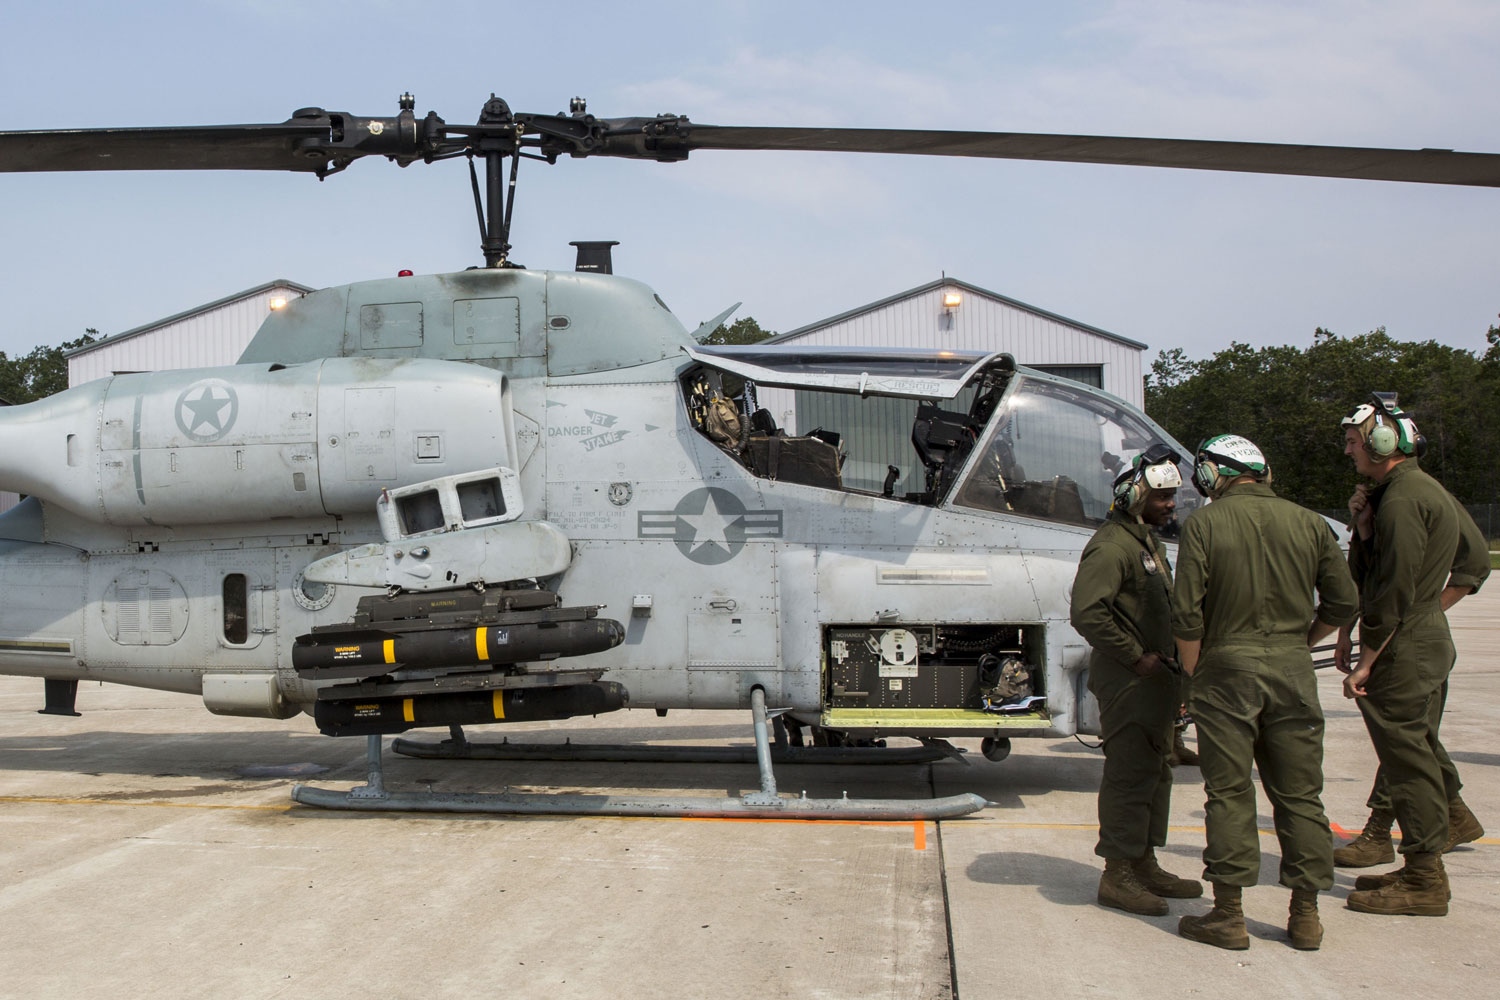 U.S. Marines with Marine Light Attack Helicopter Squadron 269 prepare to service an AH-1W Super Cobra at the Combat Readiness Training center Alpena, MI.